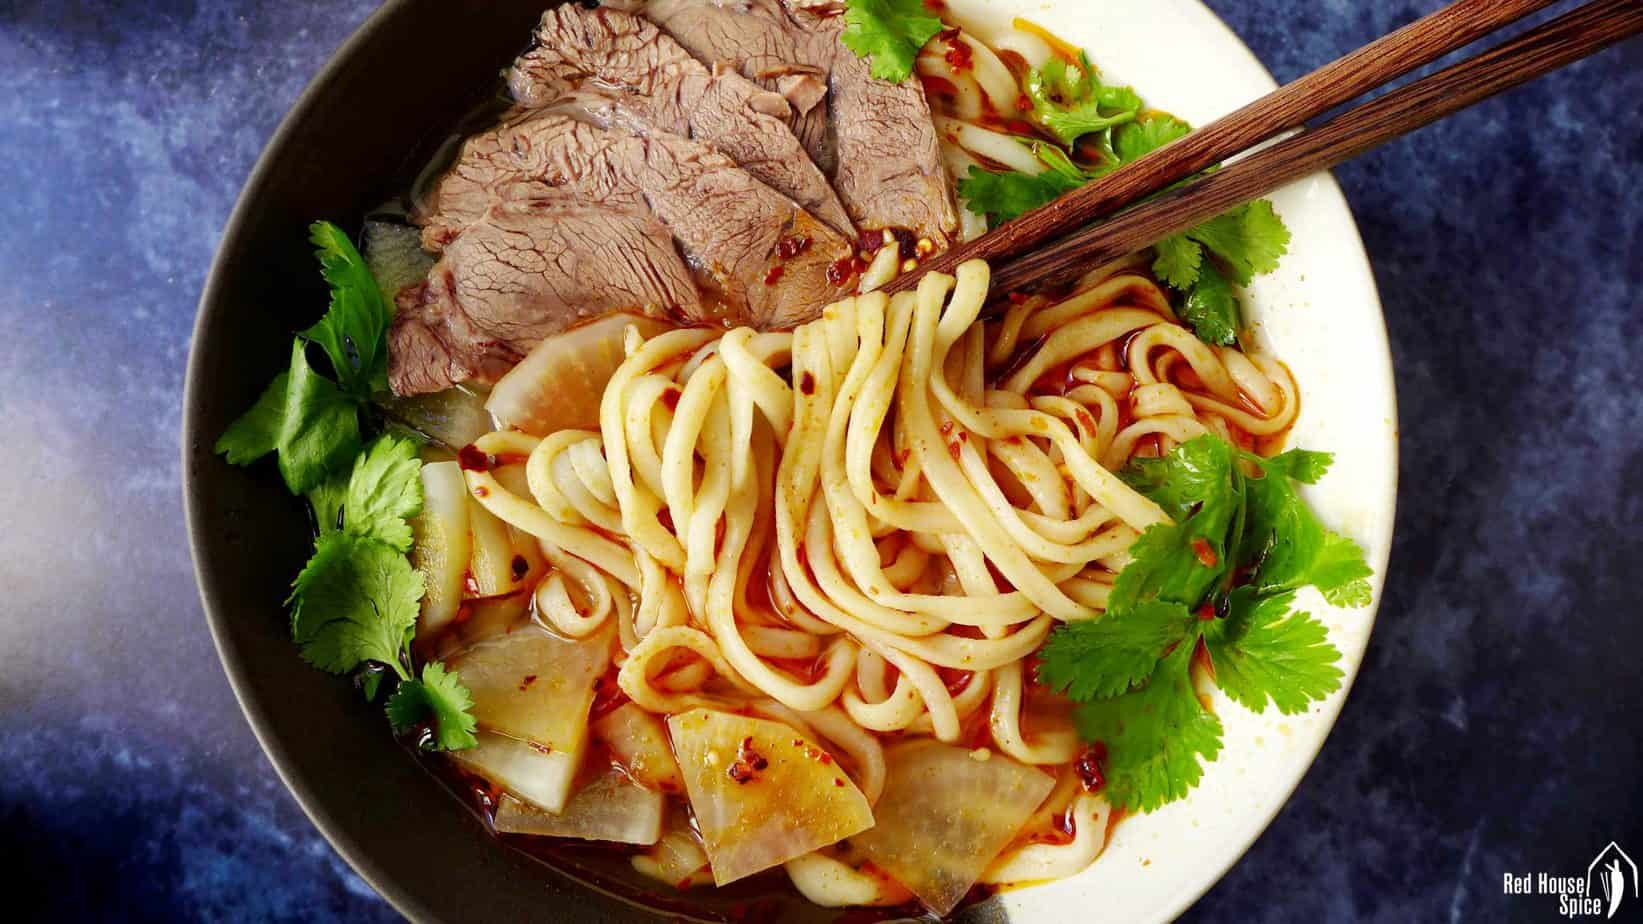 Hand Pulled Noodles La Mian 拉面 A Foolproof Recipe Red House Spice